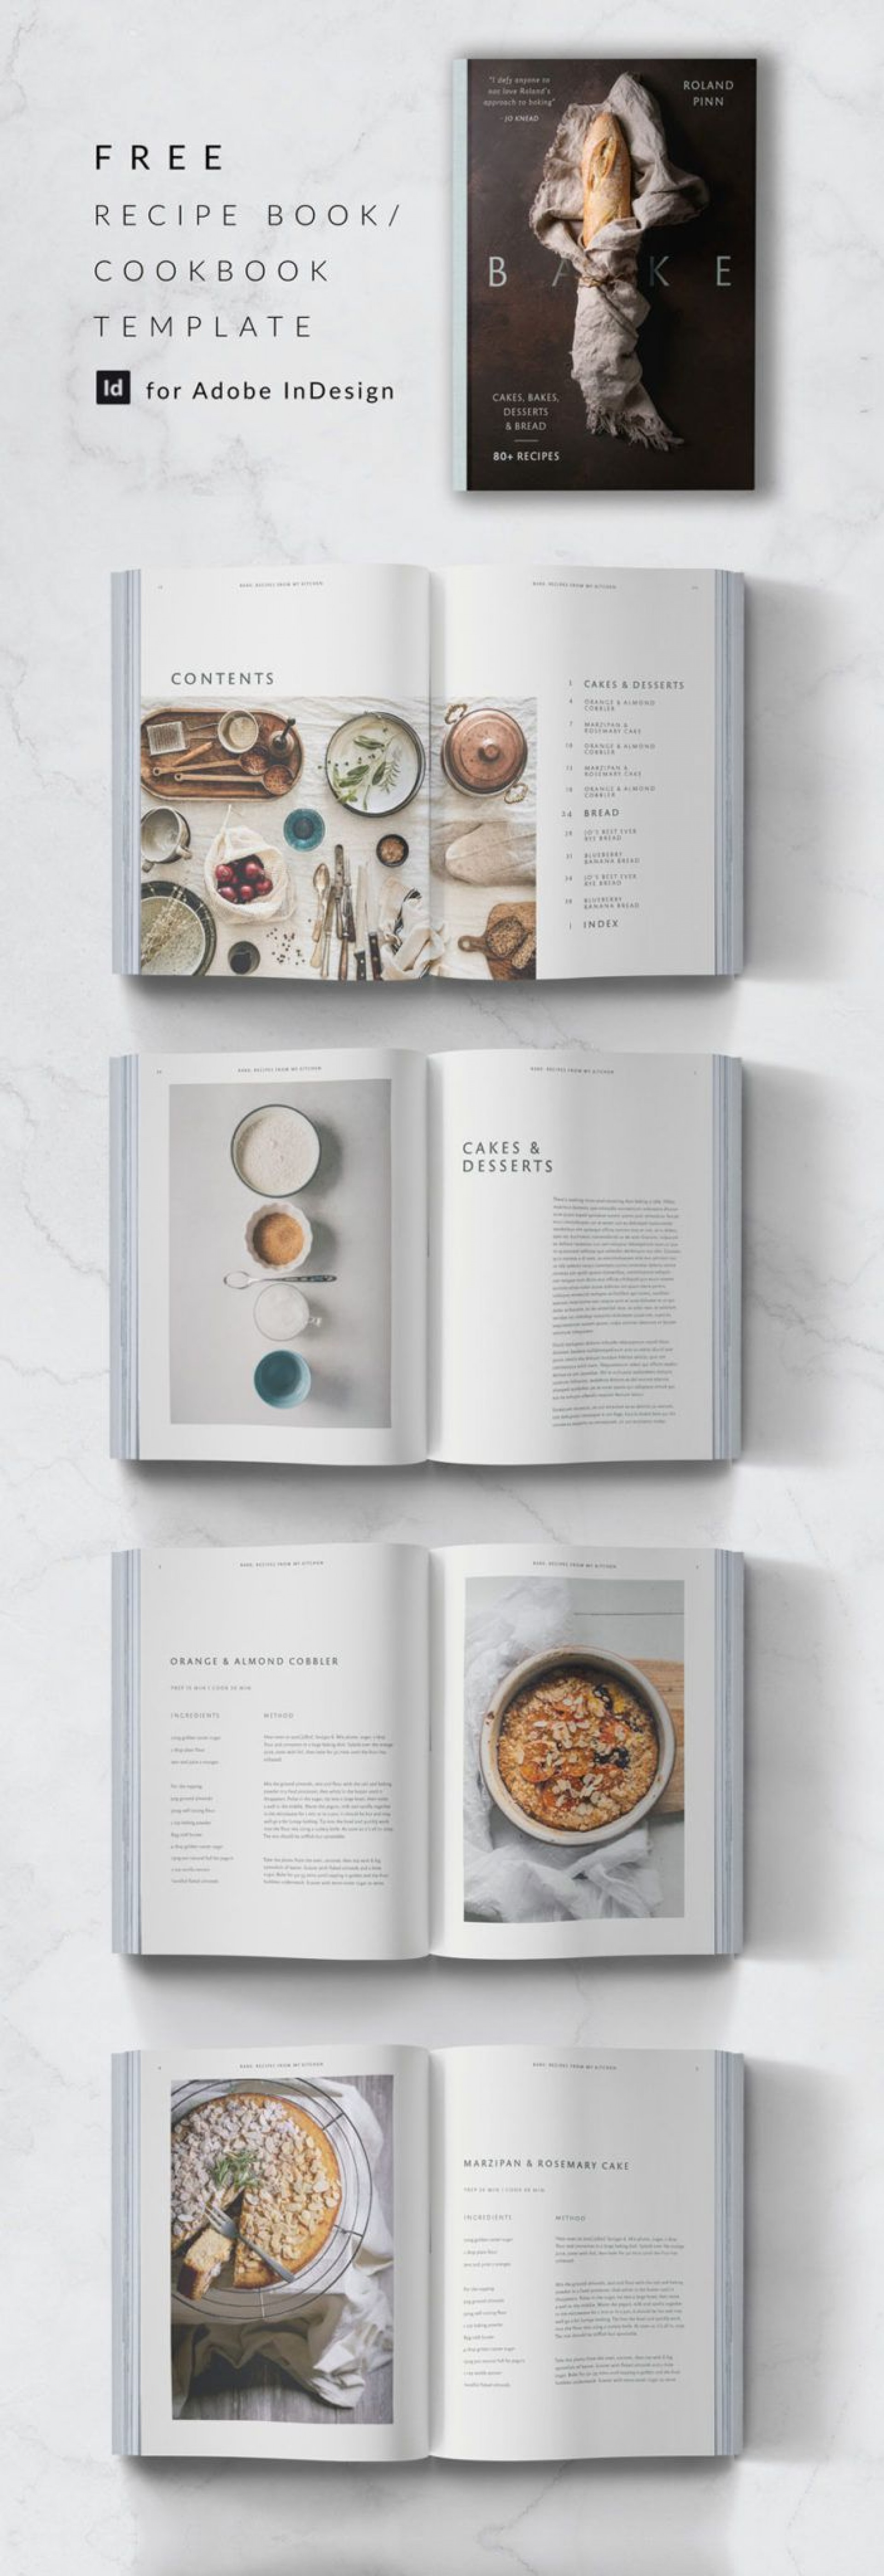 009 Amazing Free Recipe Book Template Concept  Editable Cookbook For Microsoft Word Indesign1920